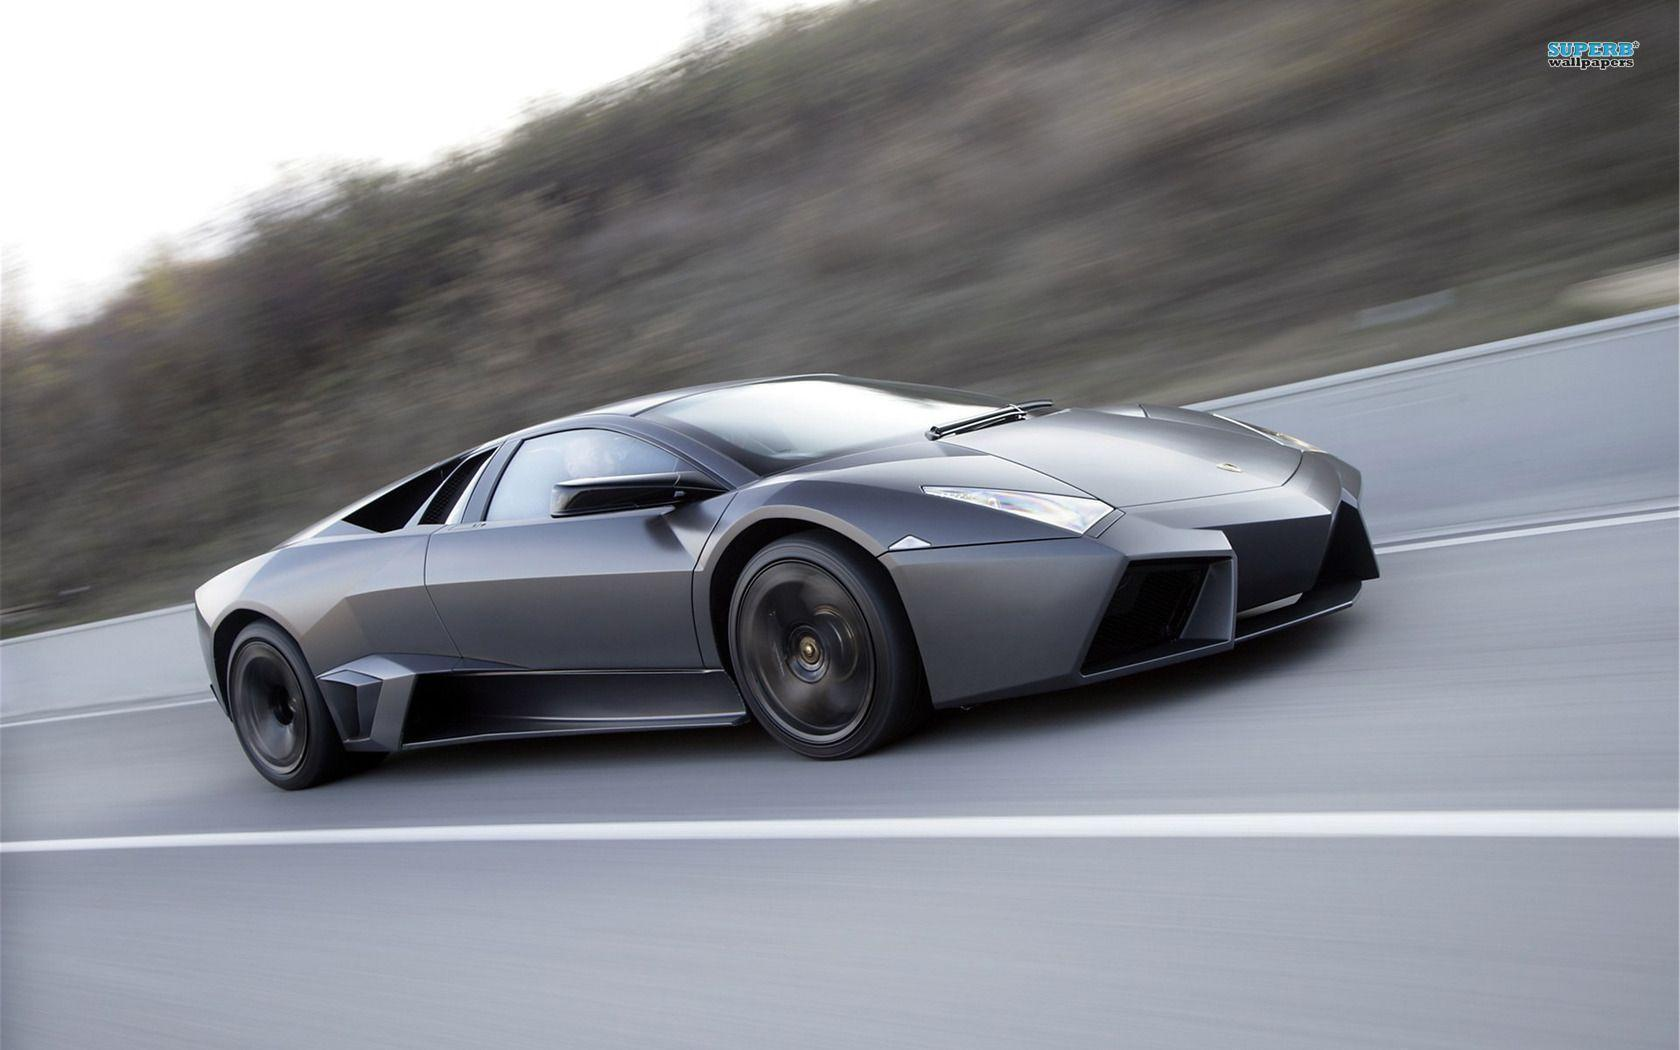 lambo reventon wallpapers wallpaper cave. Black Bedroom Furniture Sets. Home Design Ideas